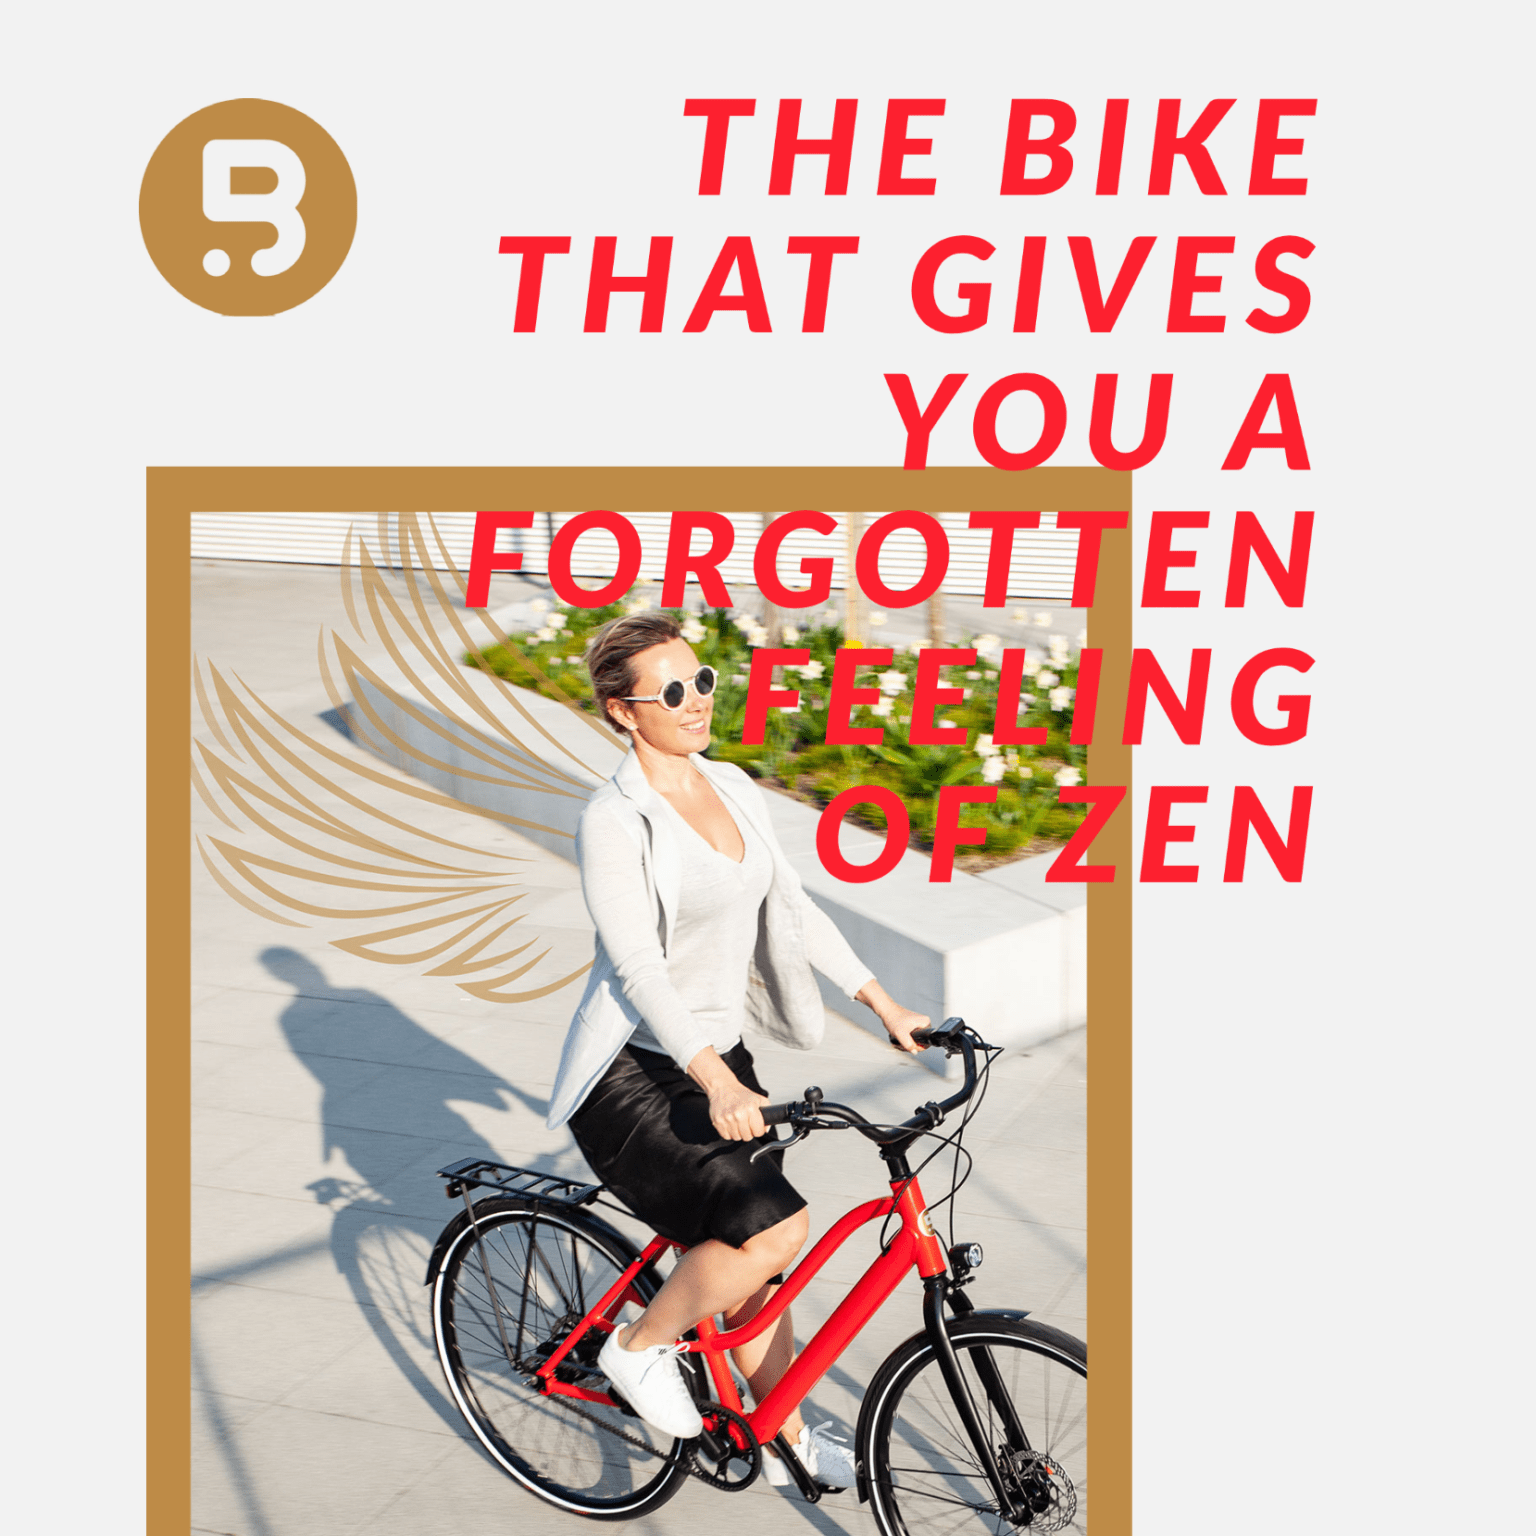 The bike that gives you a forgotten feeling of zen